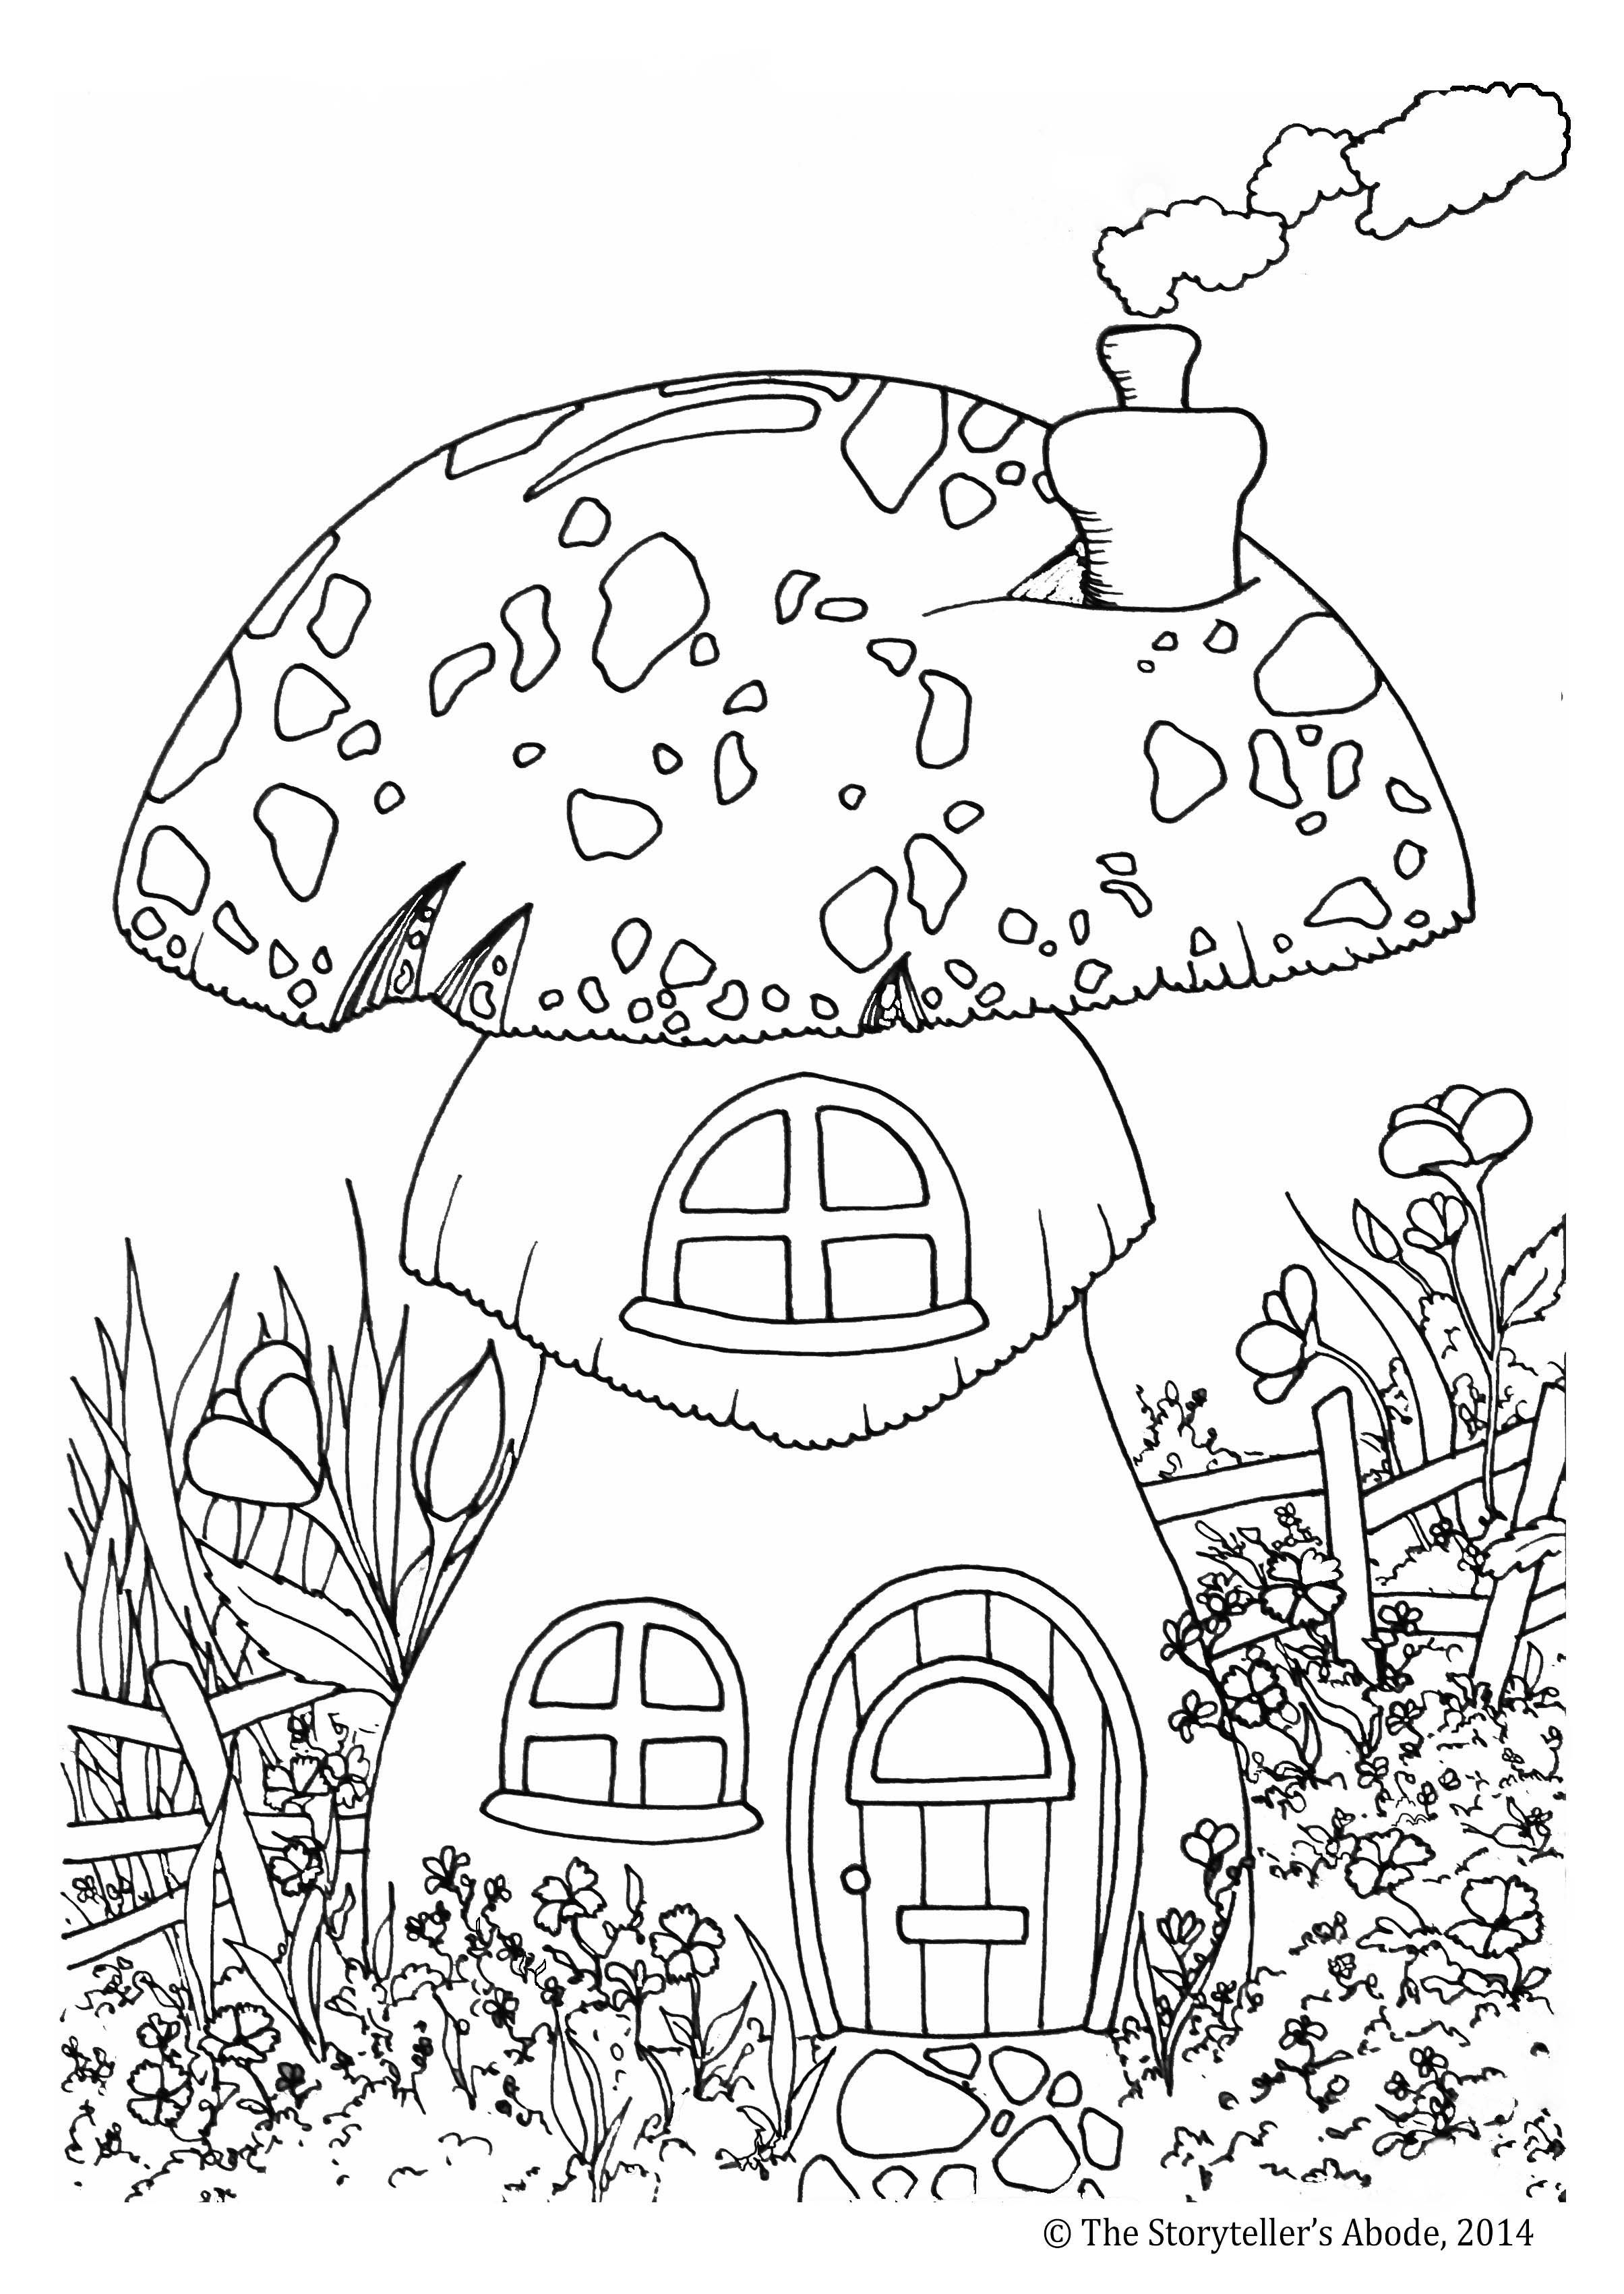 Enchanted Forest Colouring Pictures Fairy Houses Coloring Enchanted Forest Coloring Book Forest Coloring Book Enchanted Forest Coloring